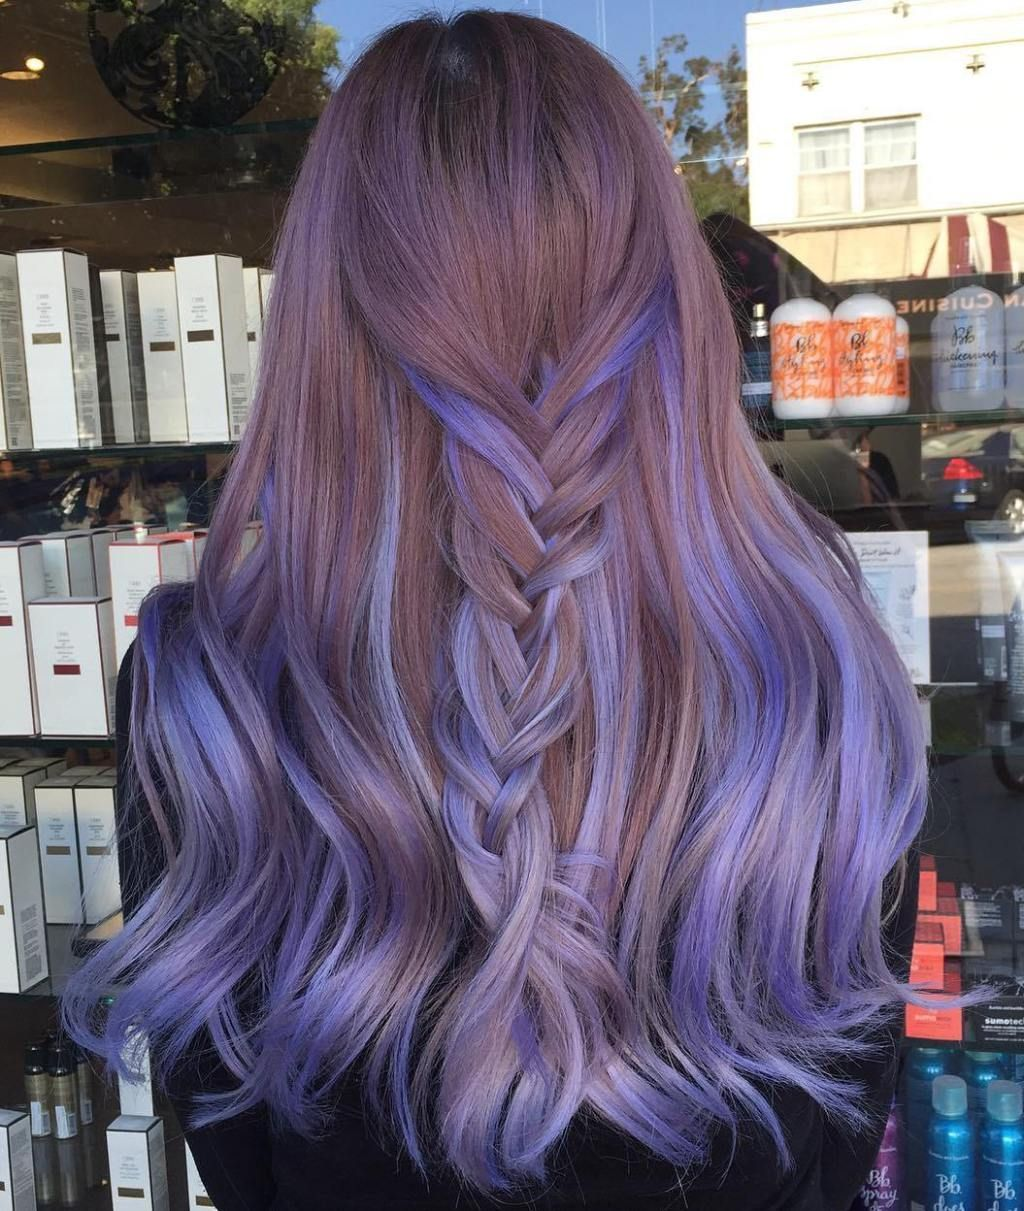 A lush mix of violets and blues in this stunning hair